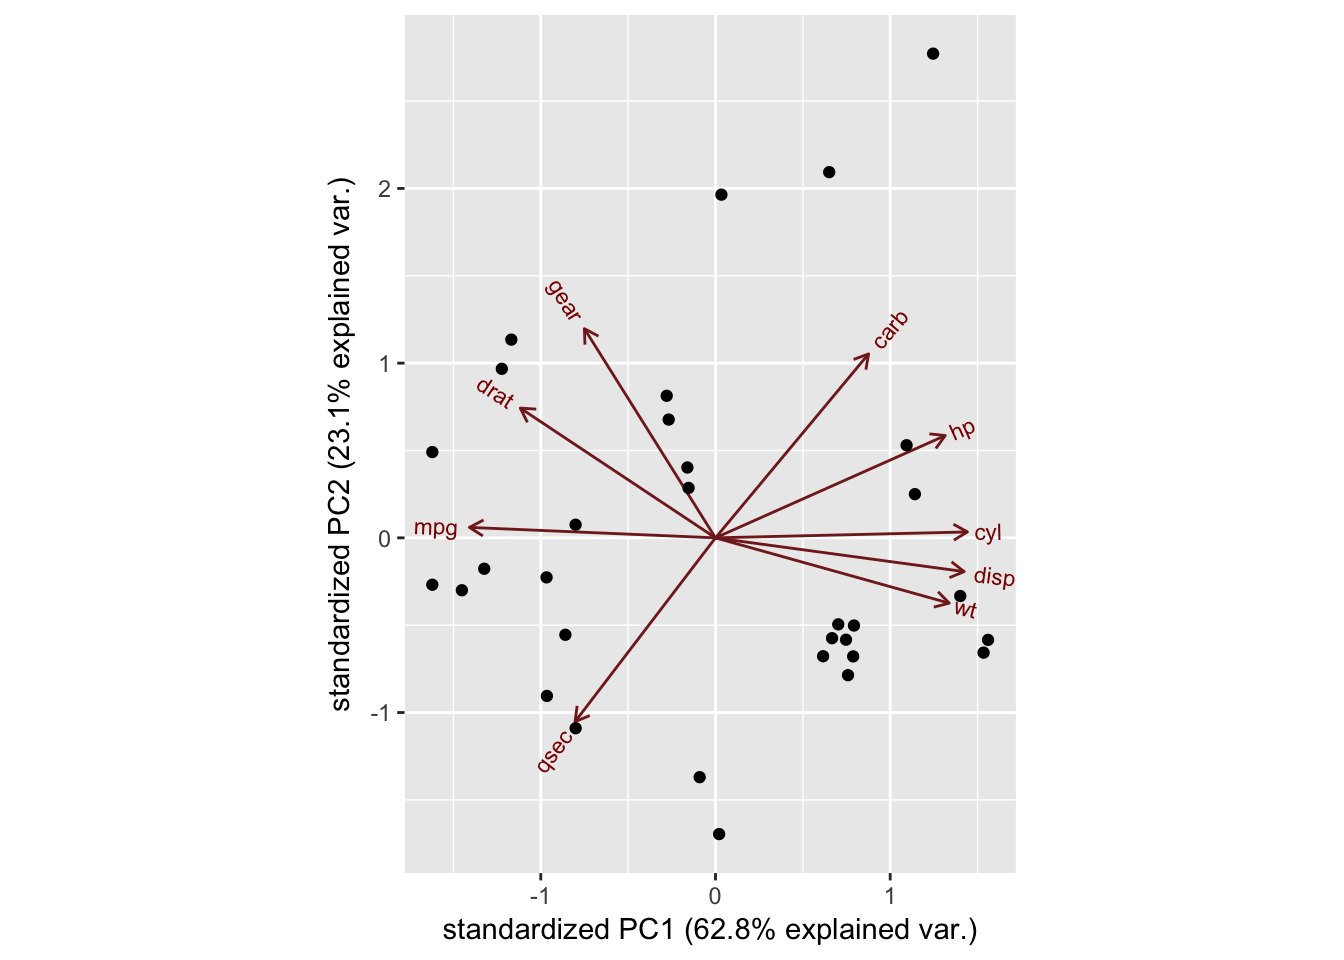 Pca Analysis In R Article Datacamp Lets Take This Diagram For Our 360 Degree The Axes Are Seen As Arrows Originating From Center Point Here You See That Variables Hp Cyl And Disp All Contribute To Pc1